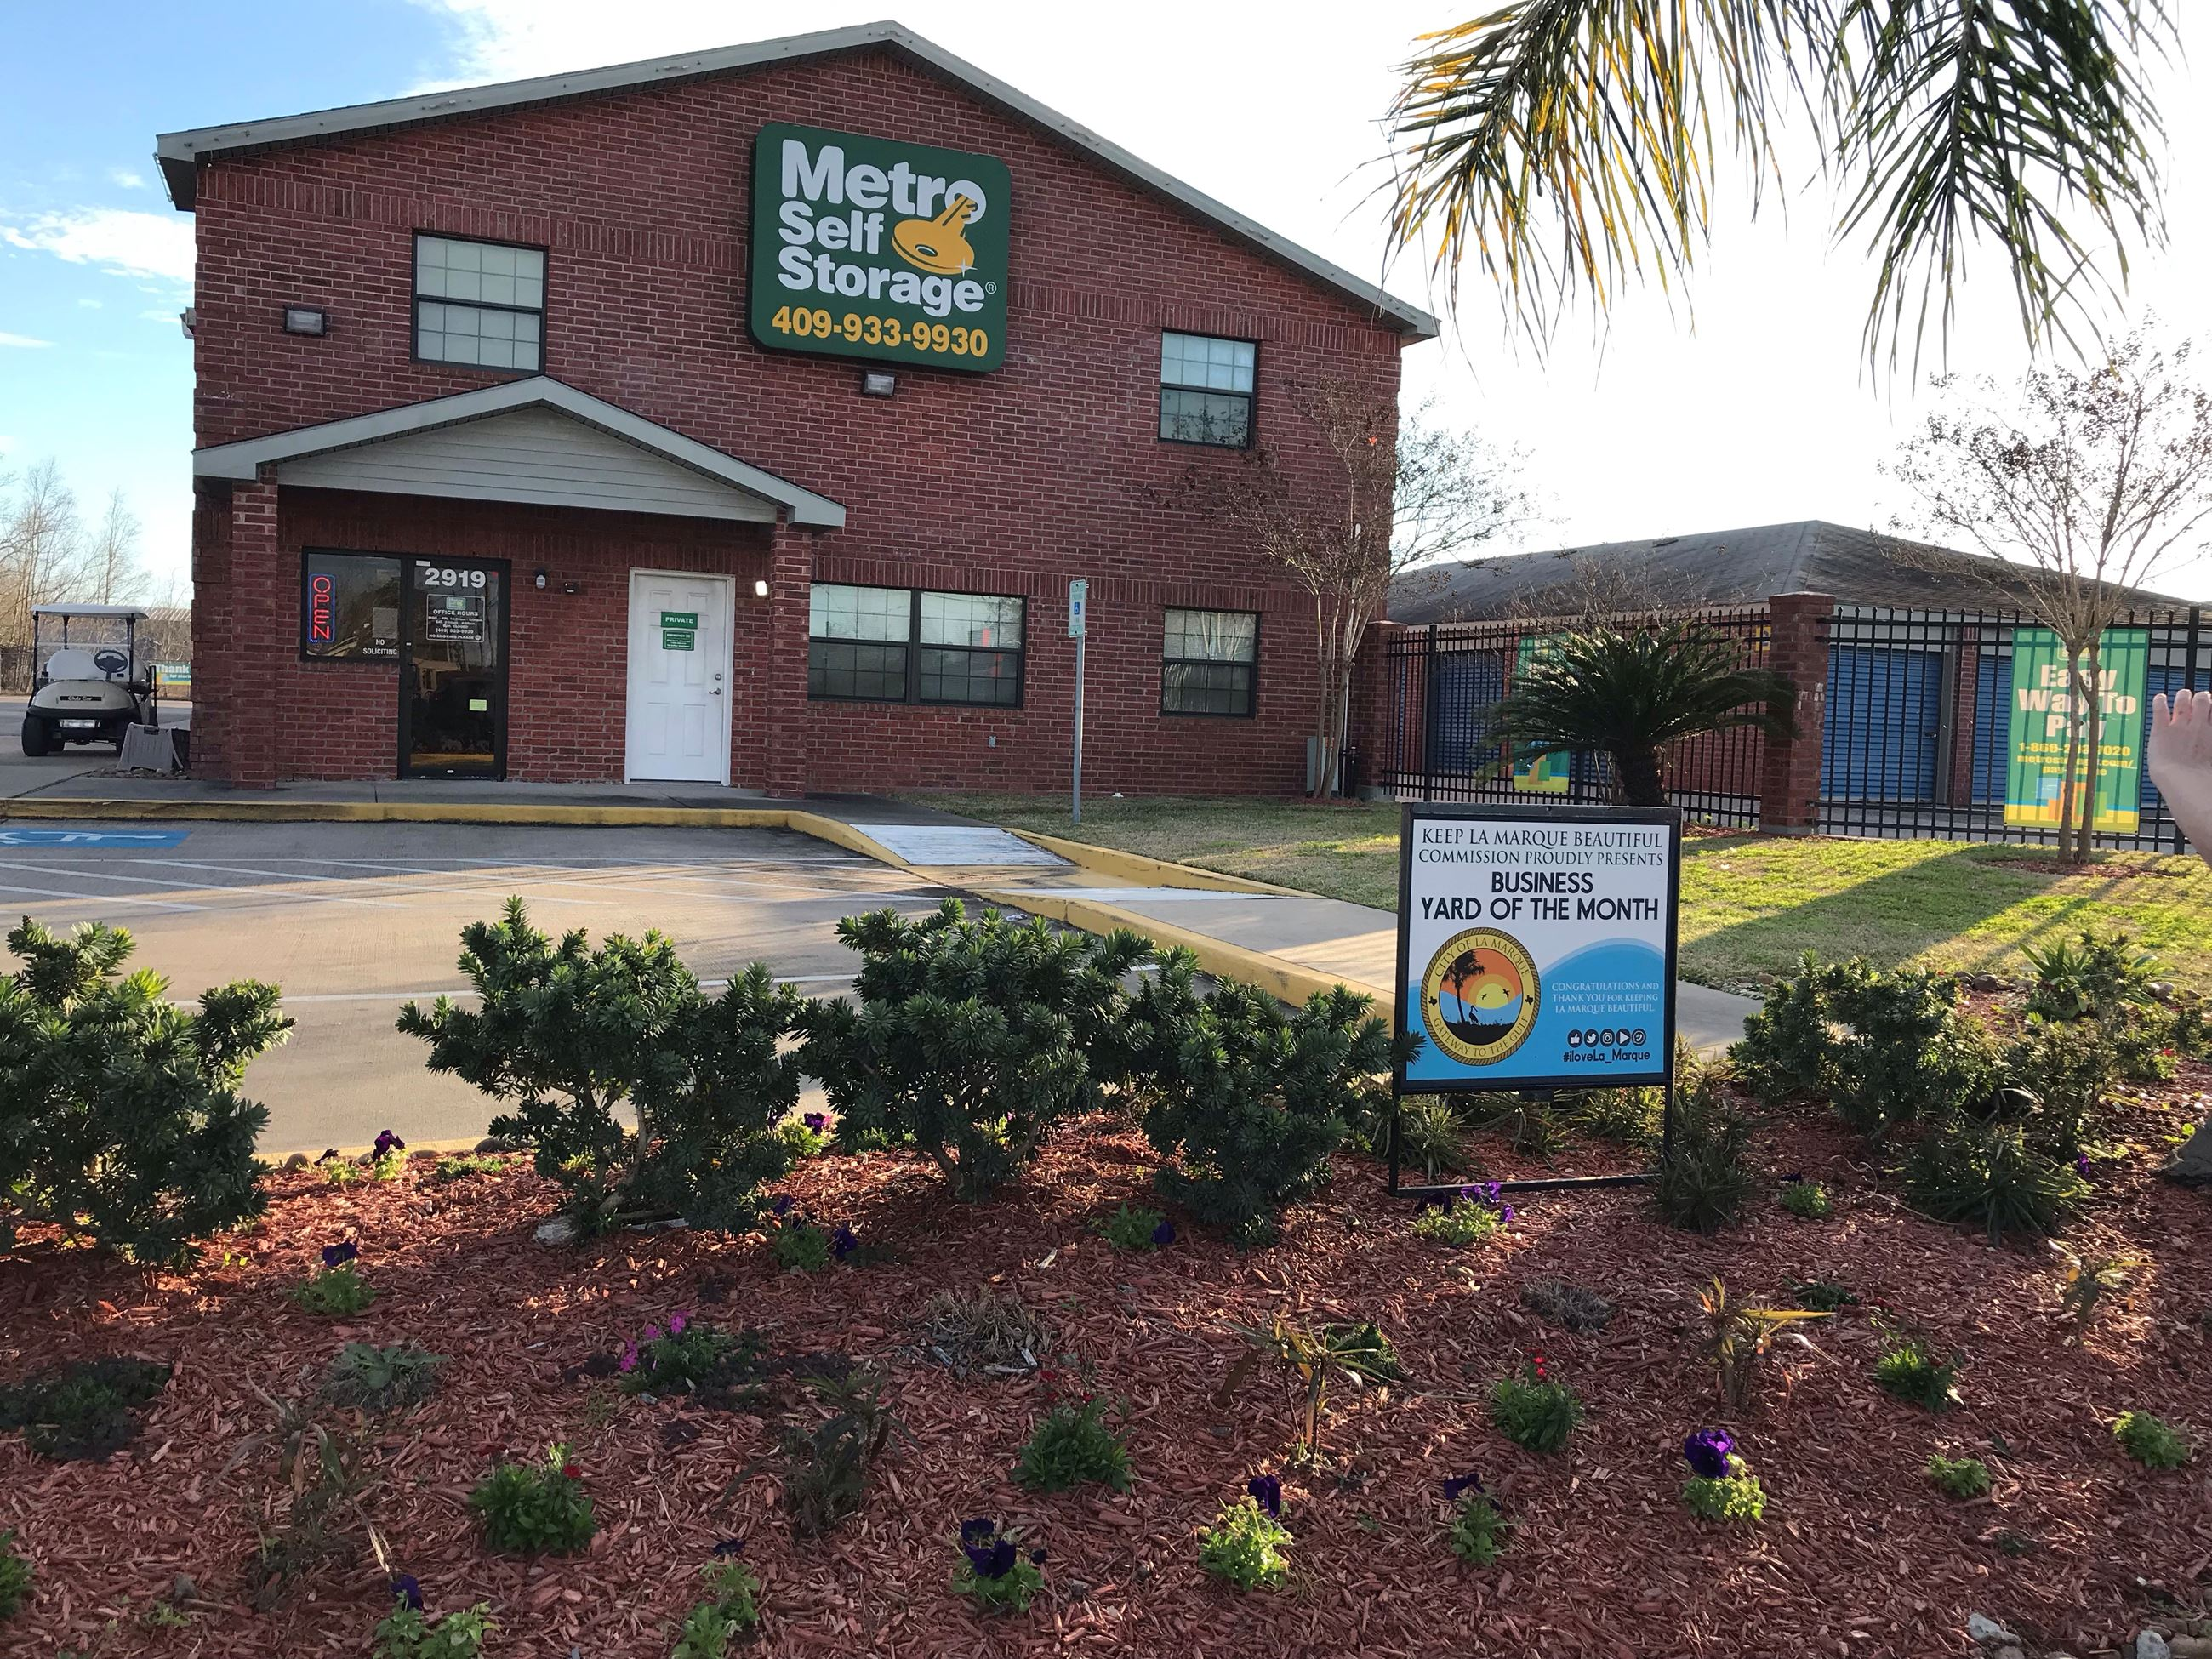 January is Metro Self Storage